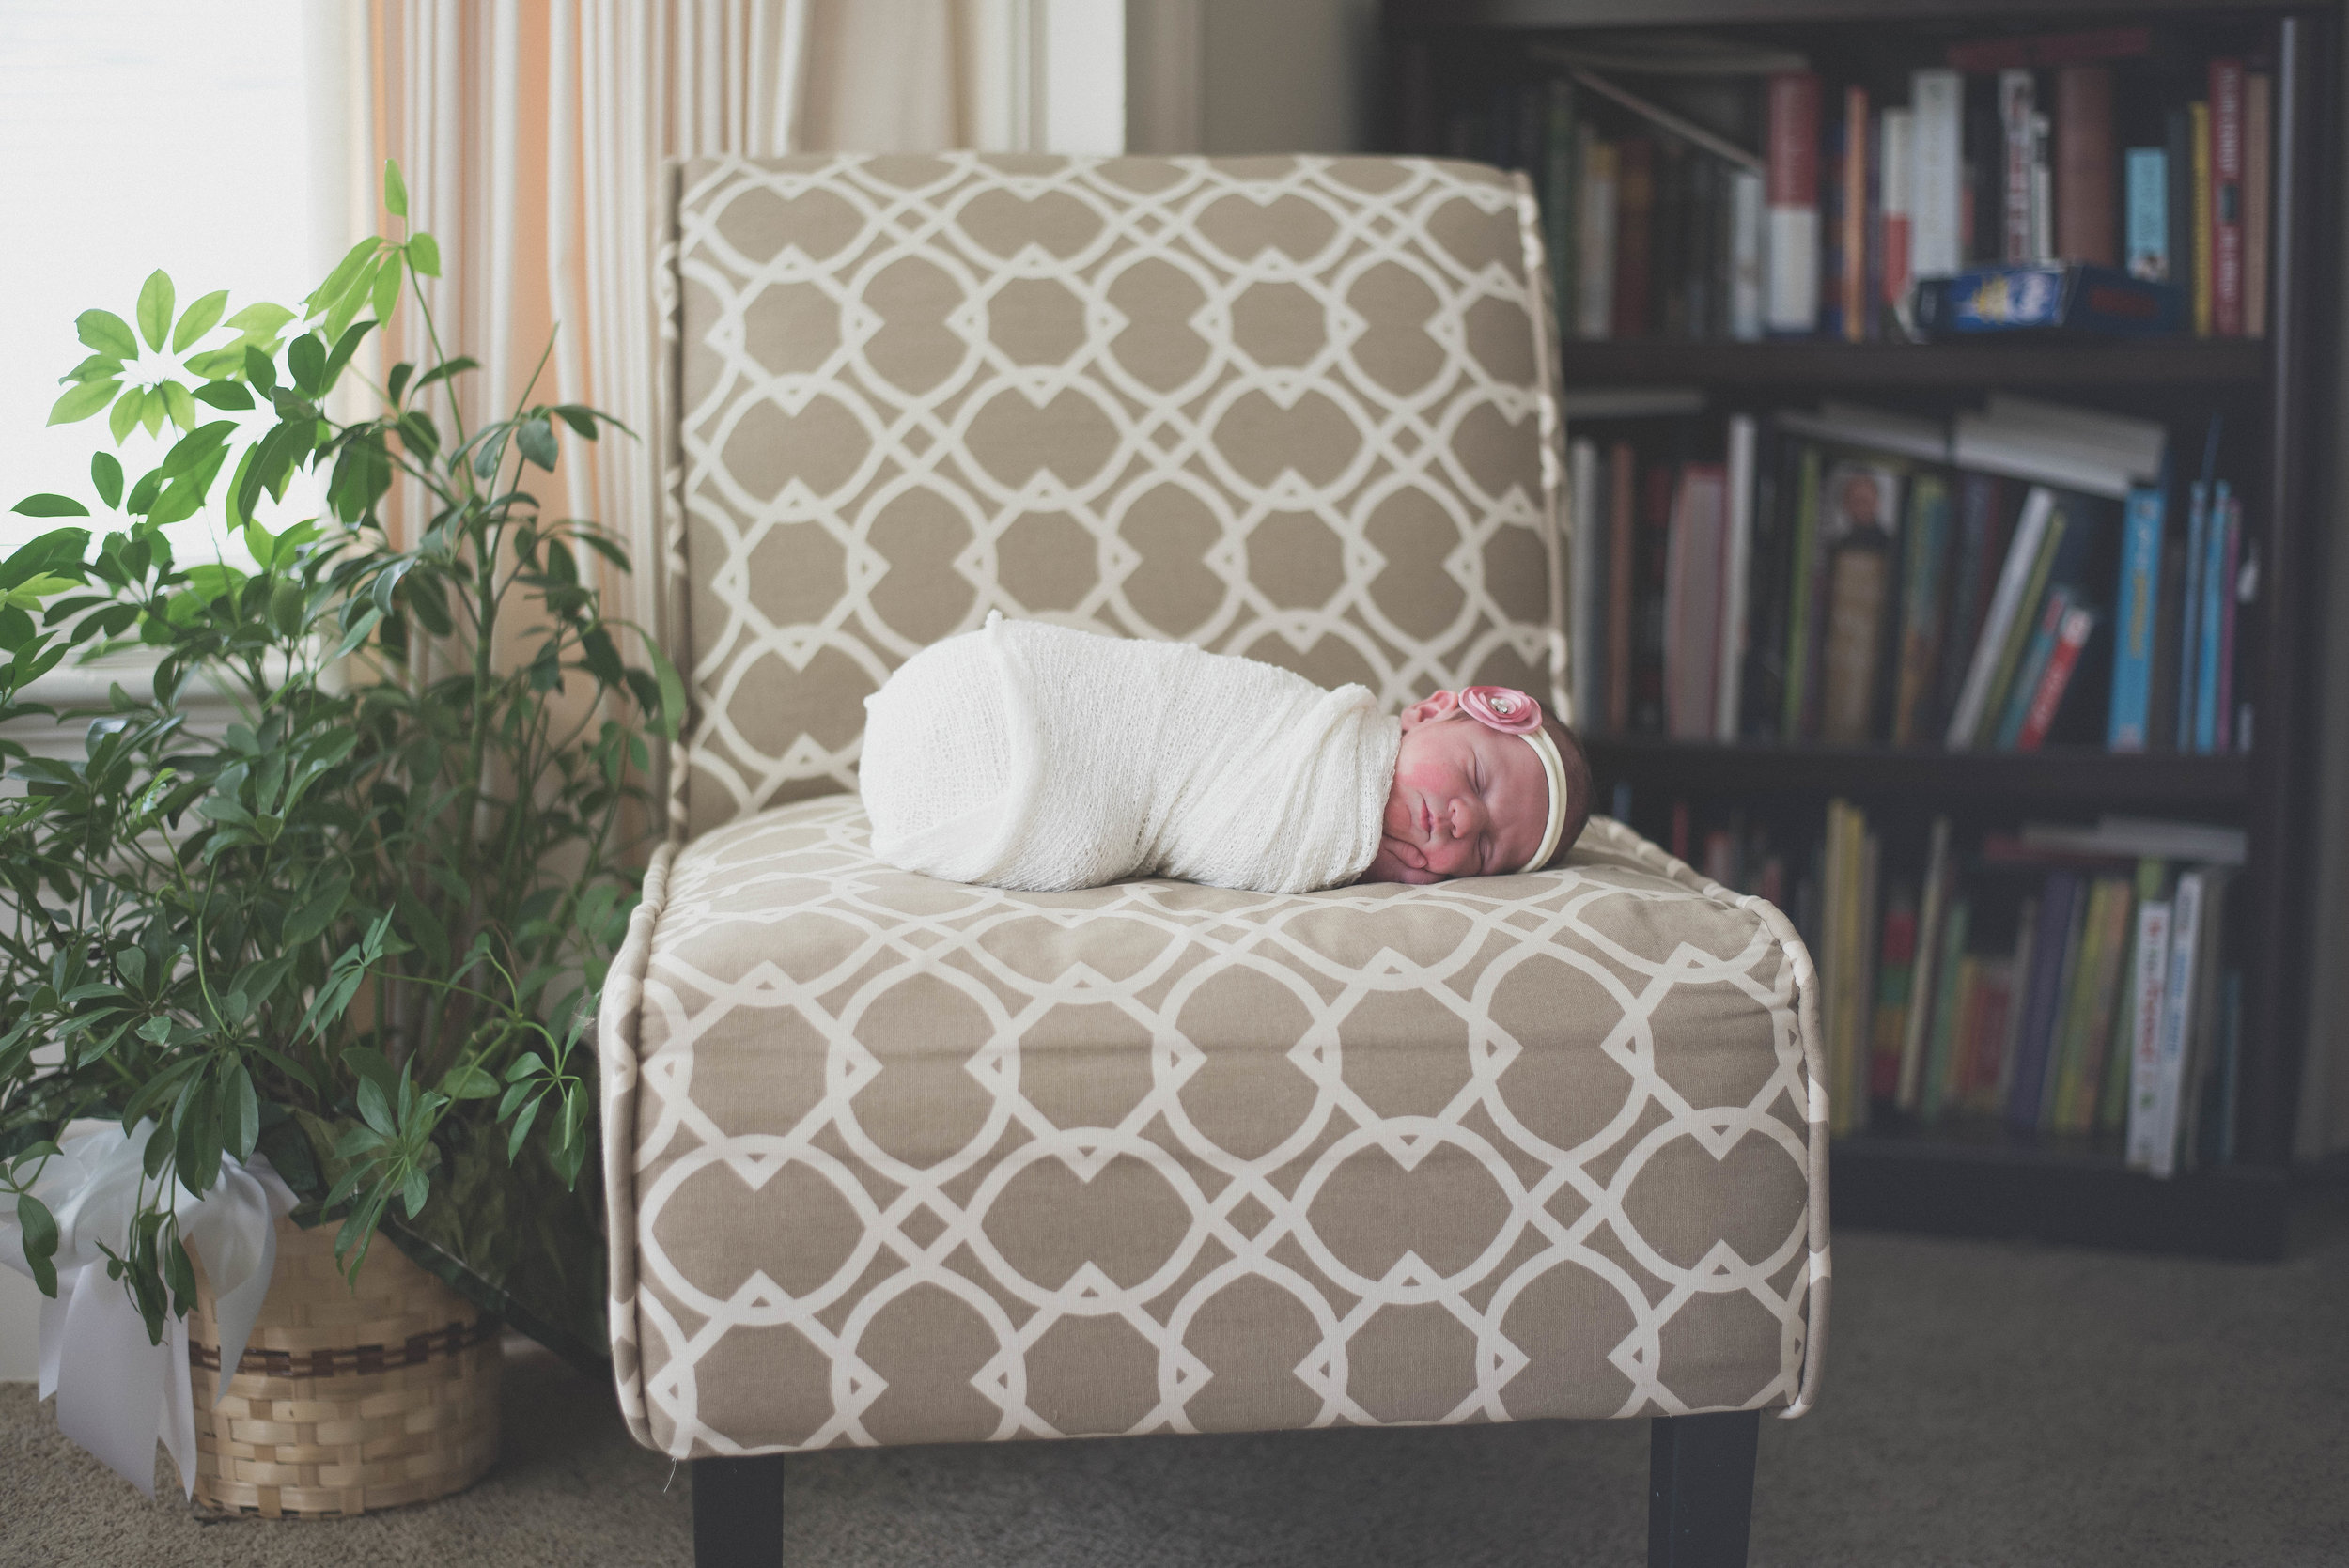 lifestyle newborn baby on chair